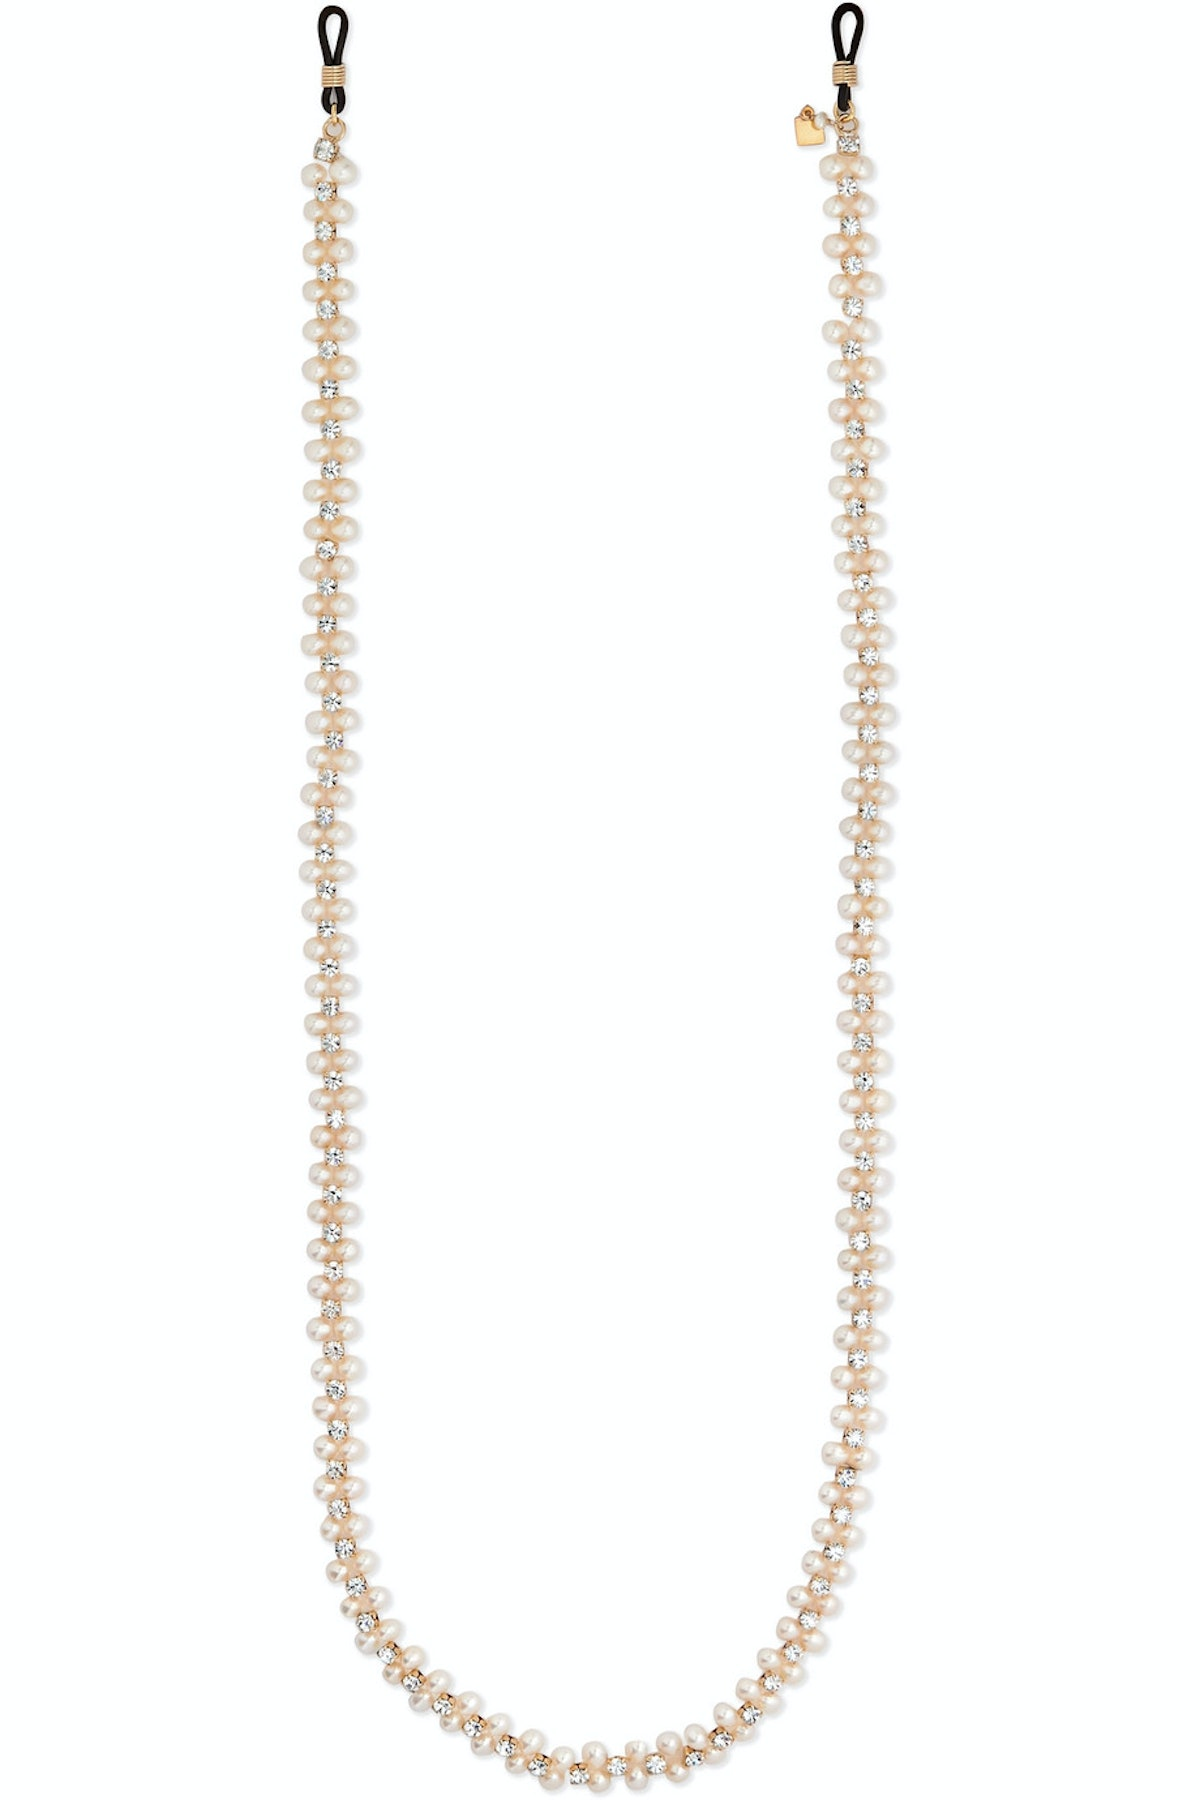 Hollywood Crystal and Pearl Sunglasses Chain